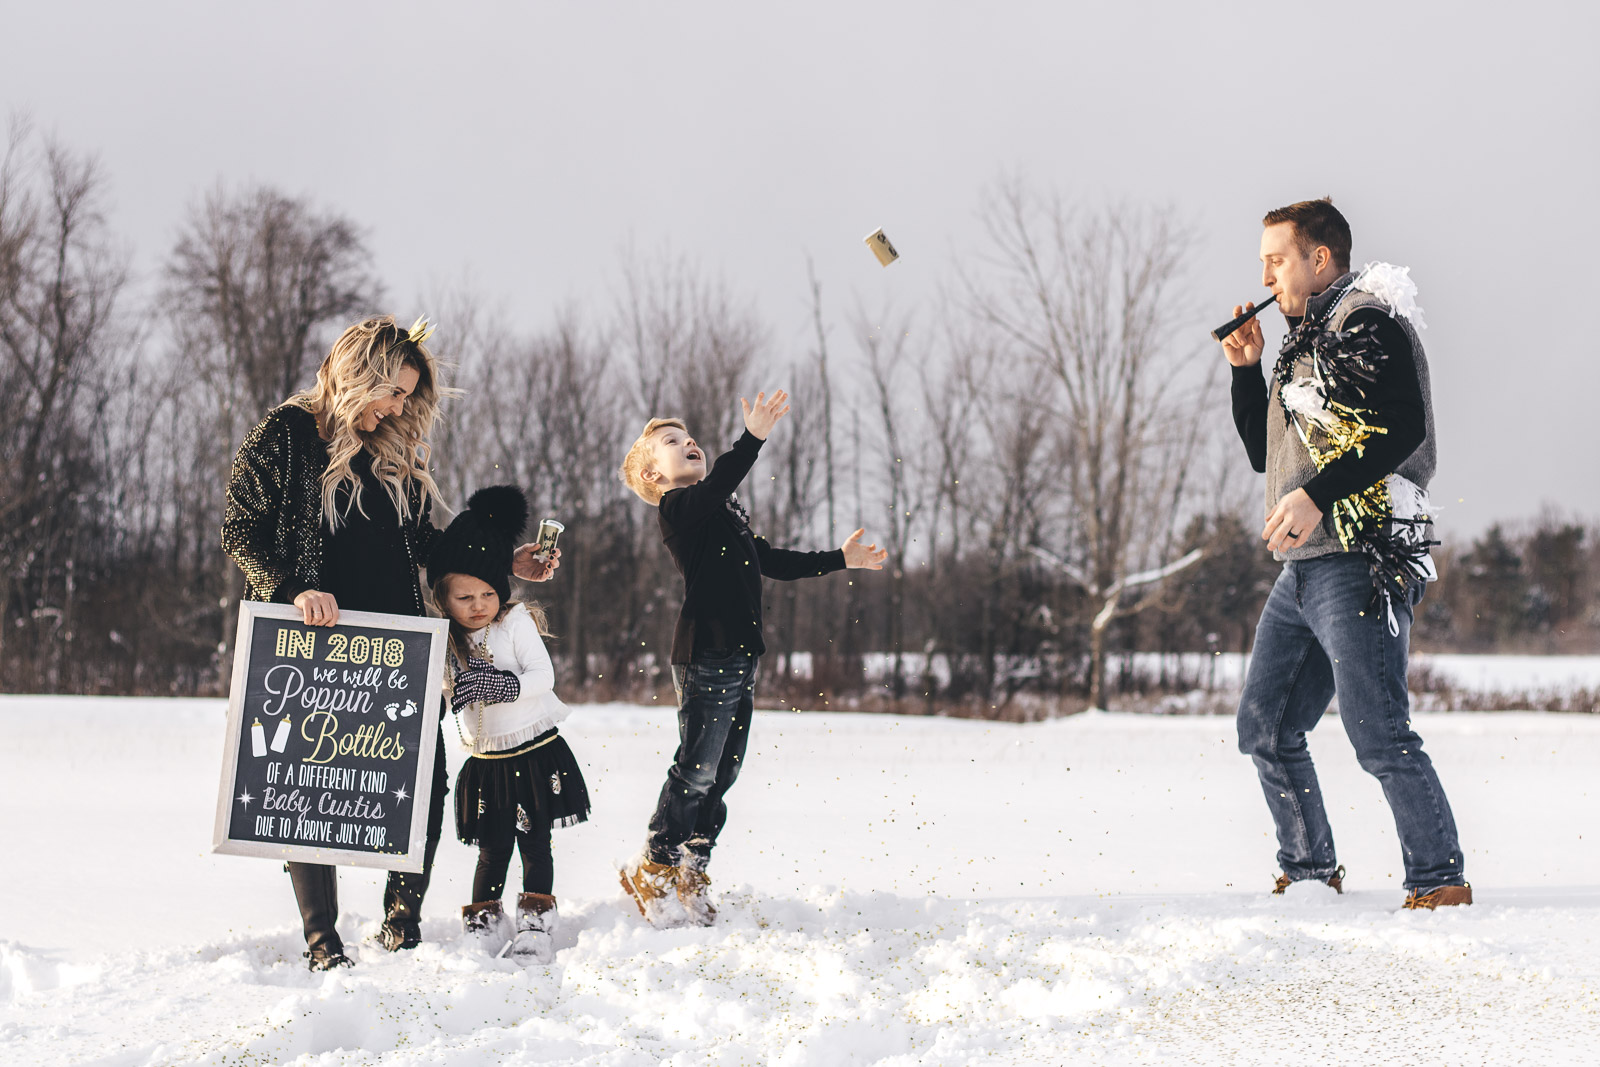 New Year's Eve Pregnancy Announcement with confetti